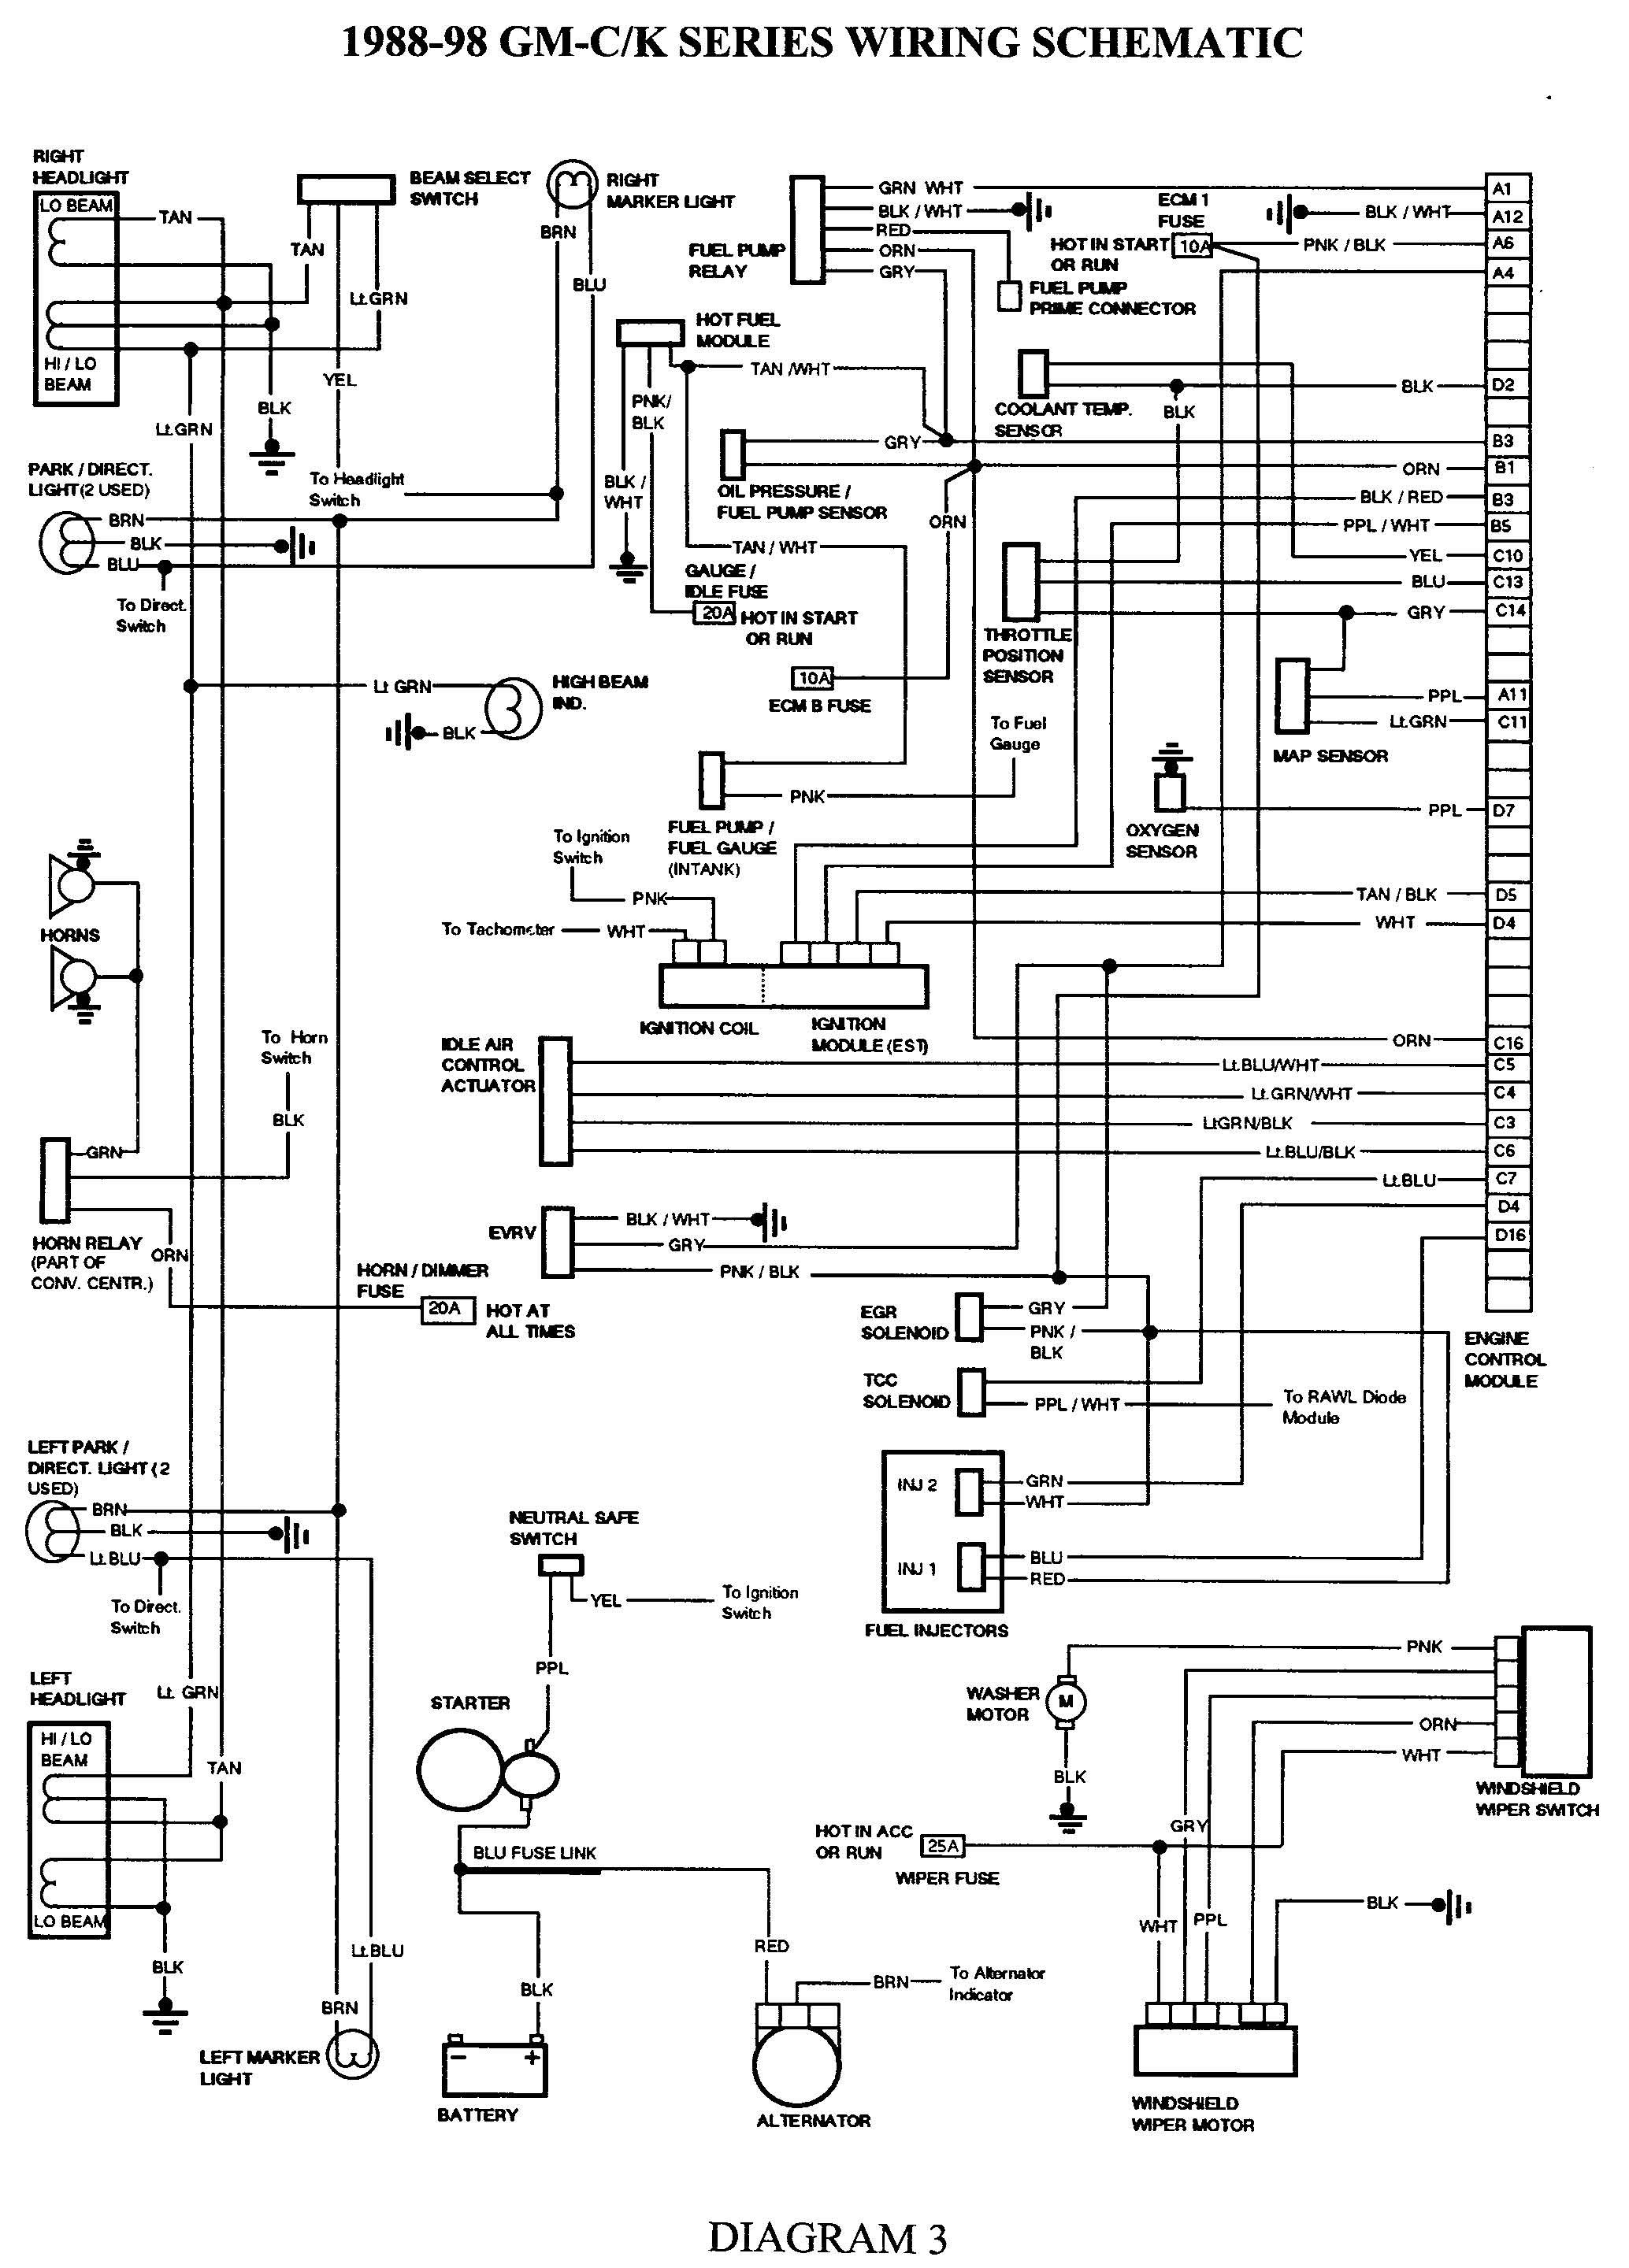 gmc truck wiring diagrams on gm wiring harness diagram 88 98 kc rh pinterest com 1987 GMC Truck Wiring Diagram 1964 GMC Truck Wiring Diagram